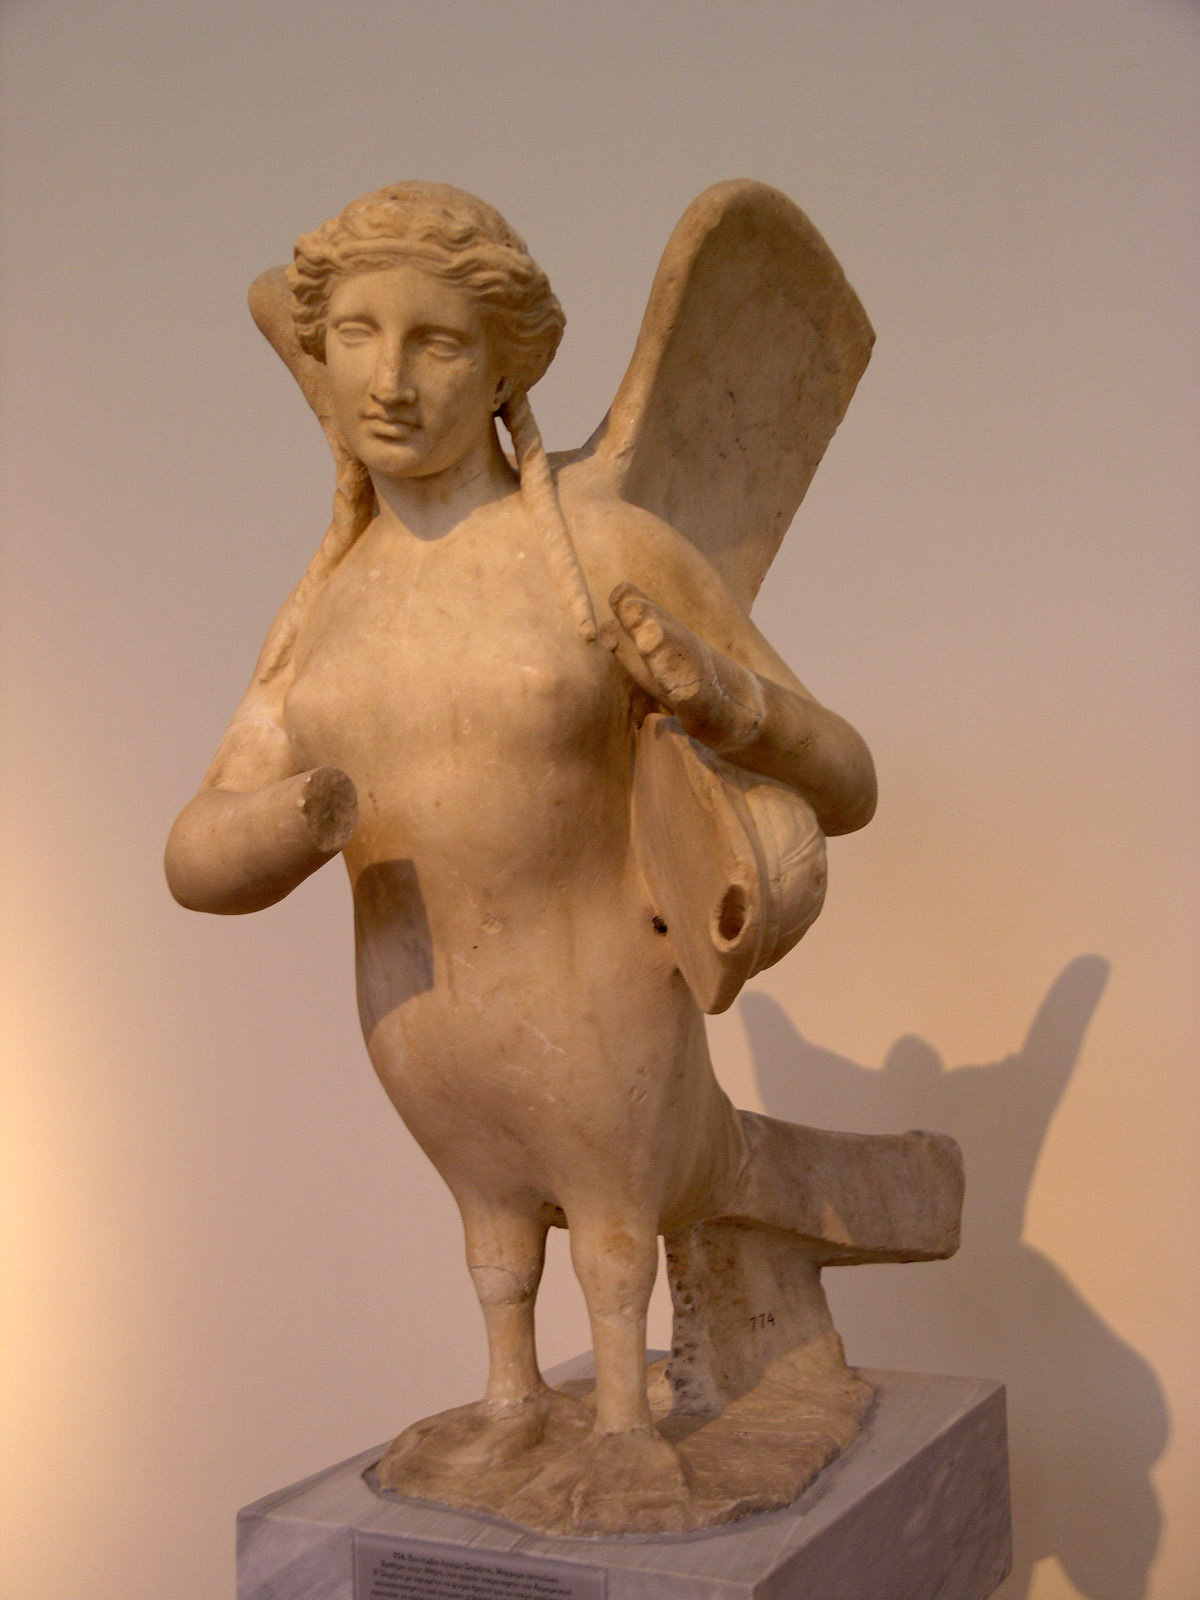 An image of a siren from an Athenian necropolis.